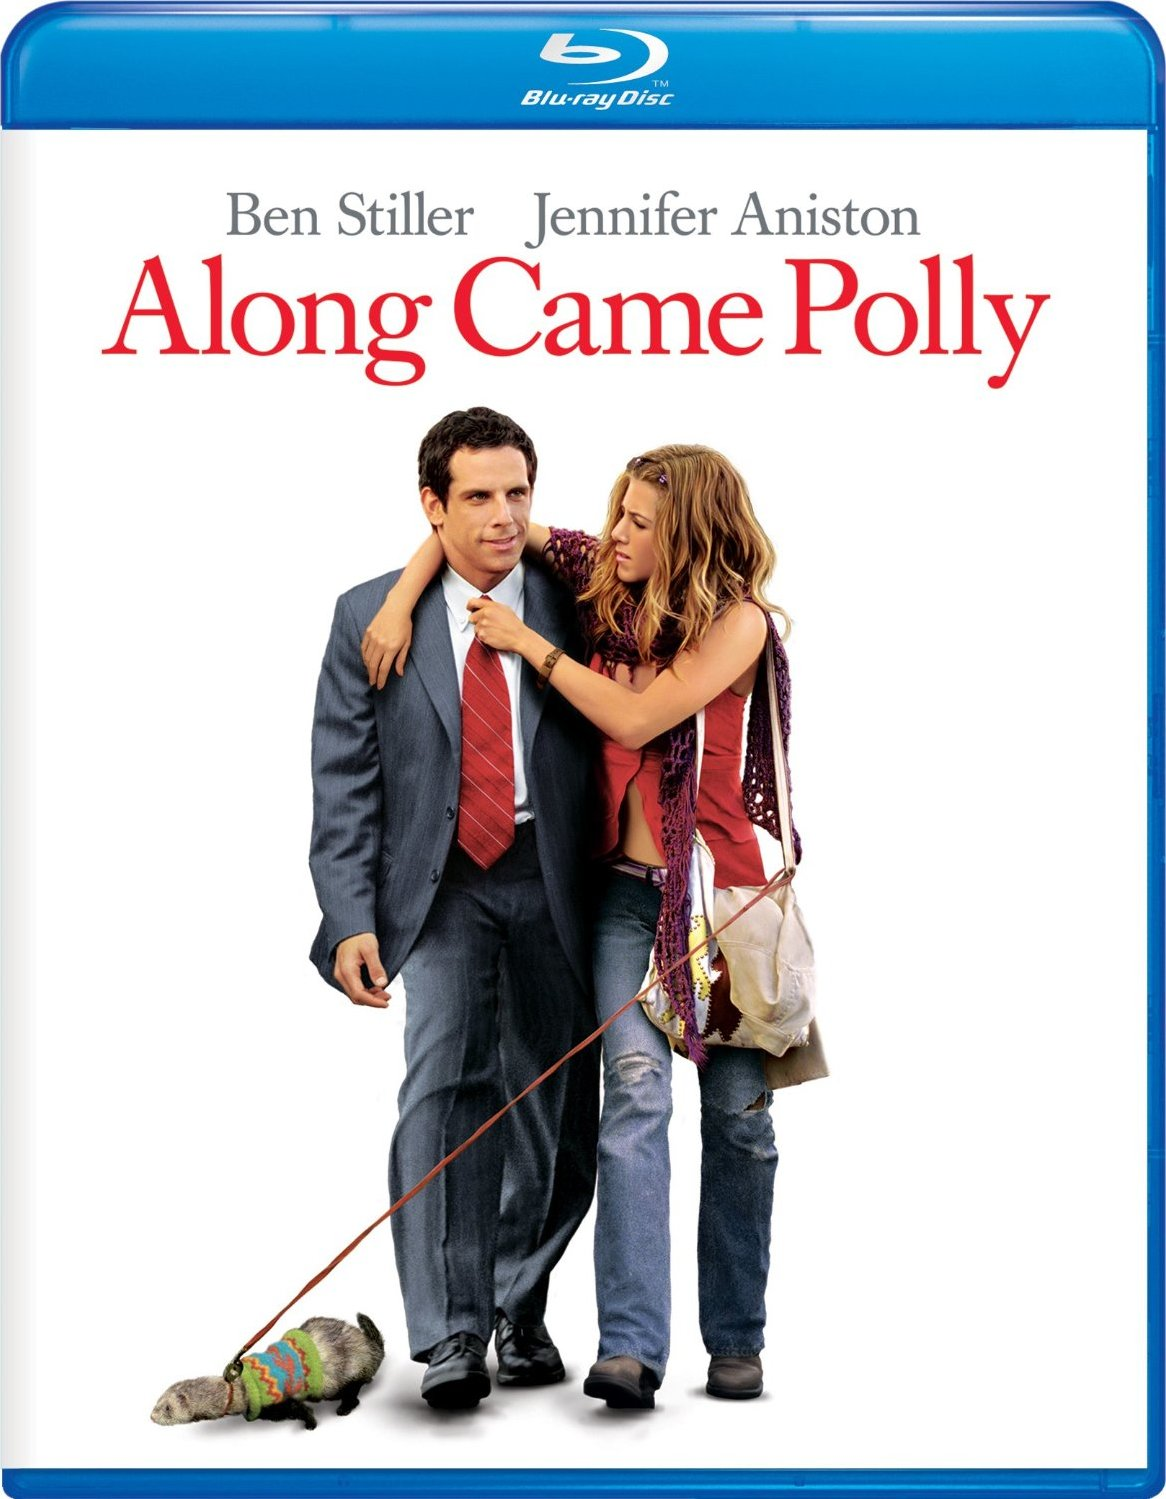 Along Came Polly (2004) Blu-ray